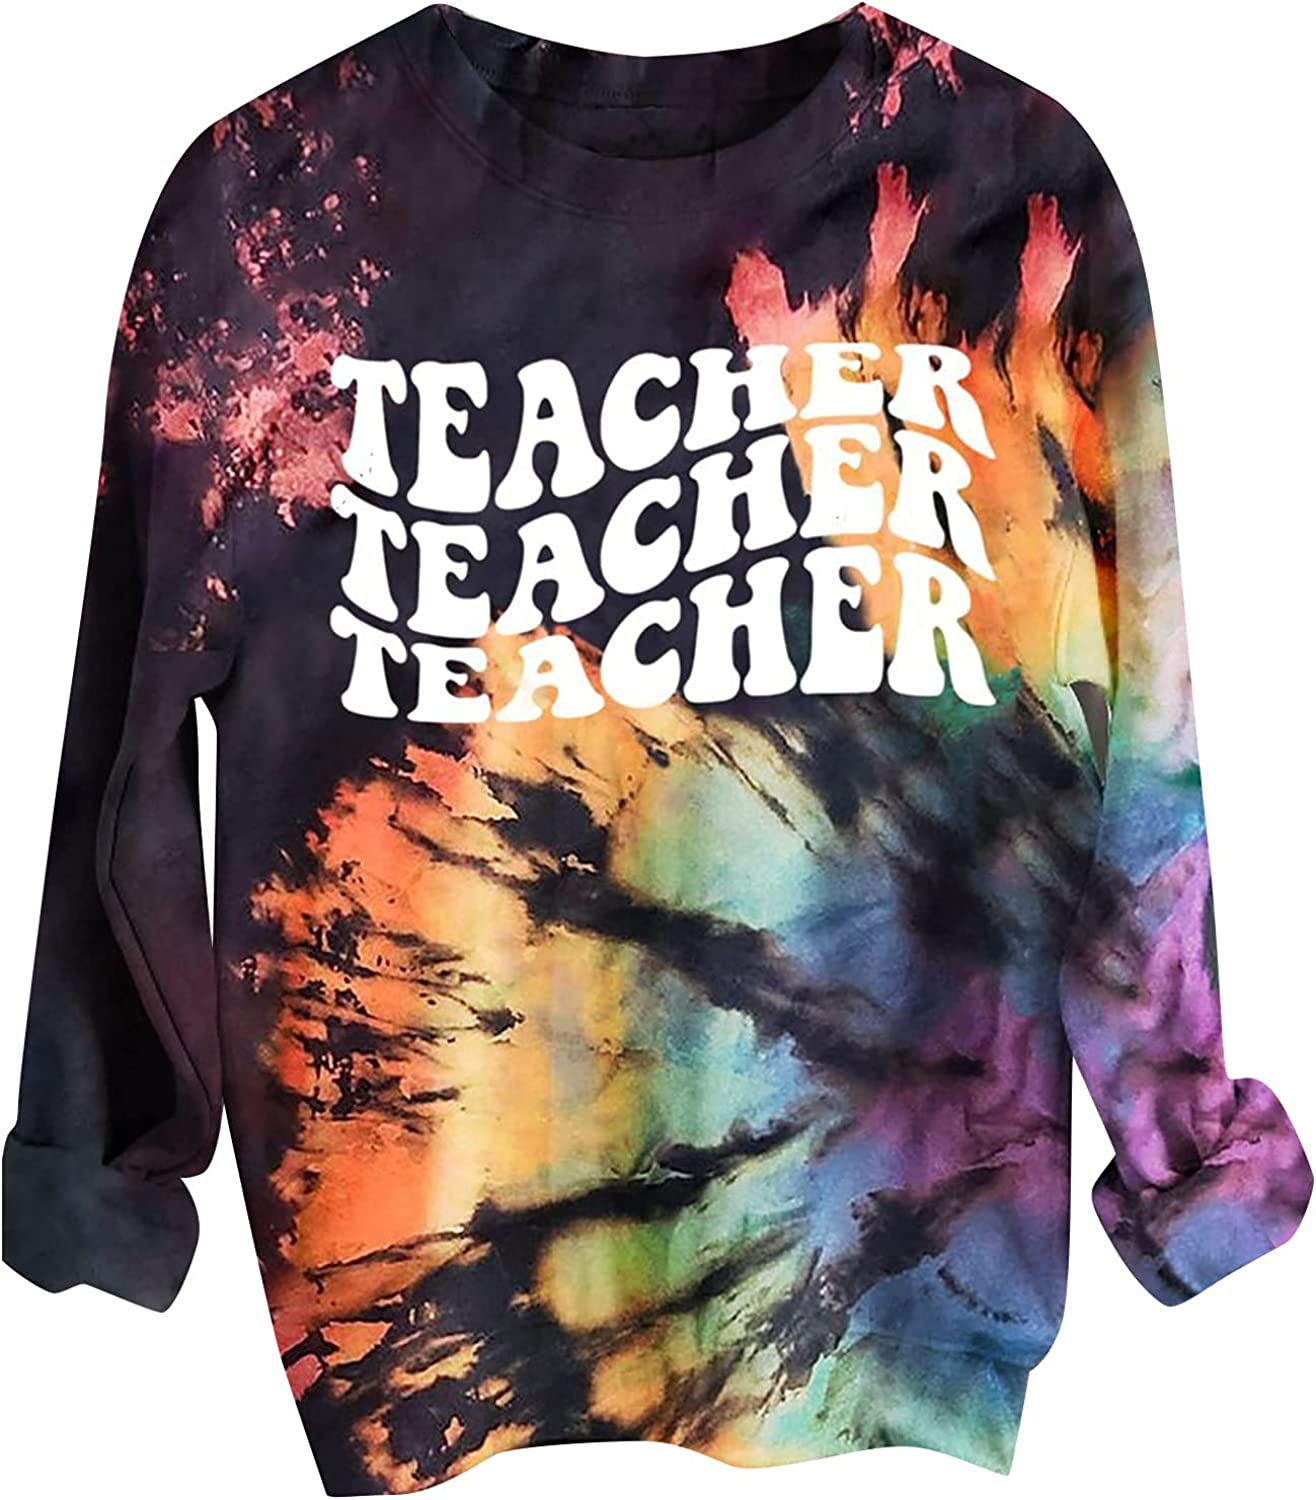 YSLMNOR Fall Tie Dye Sweatshirts Sleeve Fashion for Ranking TOP8 Womens Limited time trial price Long